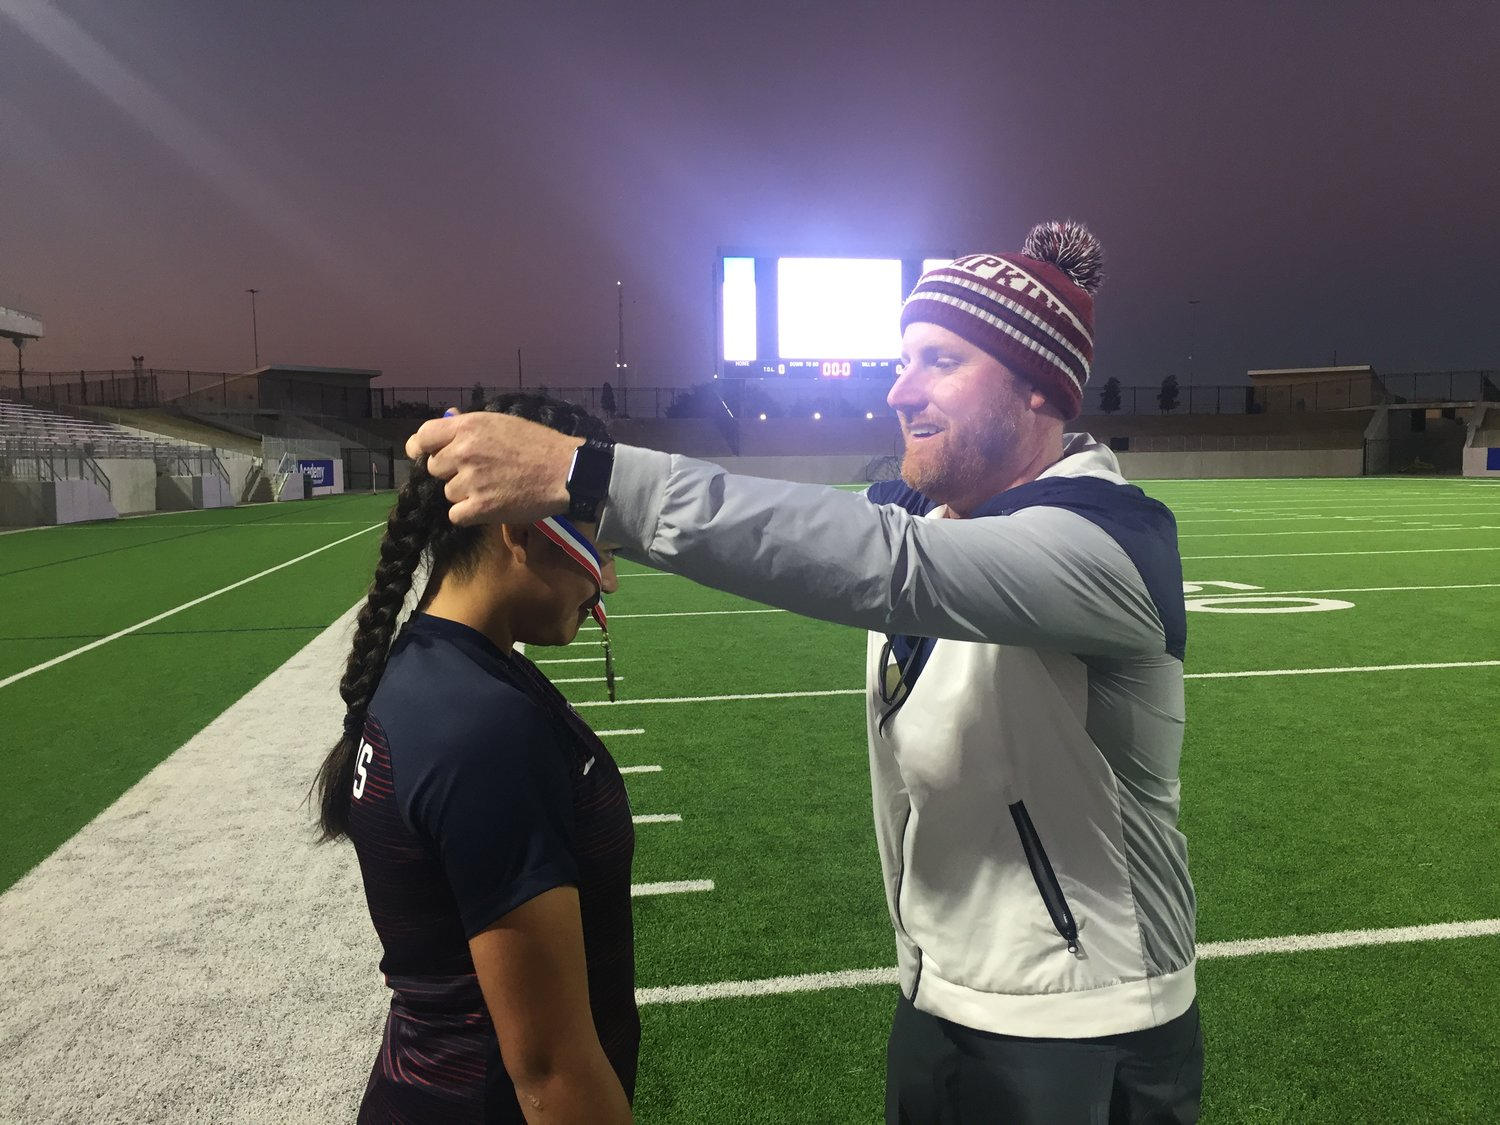 Tompkins girls soccer coach Jarrett Shipman, right, places a medal around then-junior forward Felicia Hernandez after the Falcons' championship win in the Falcon Bracket of the I-10 Shootout at Legacy Stadium last year.